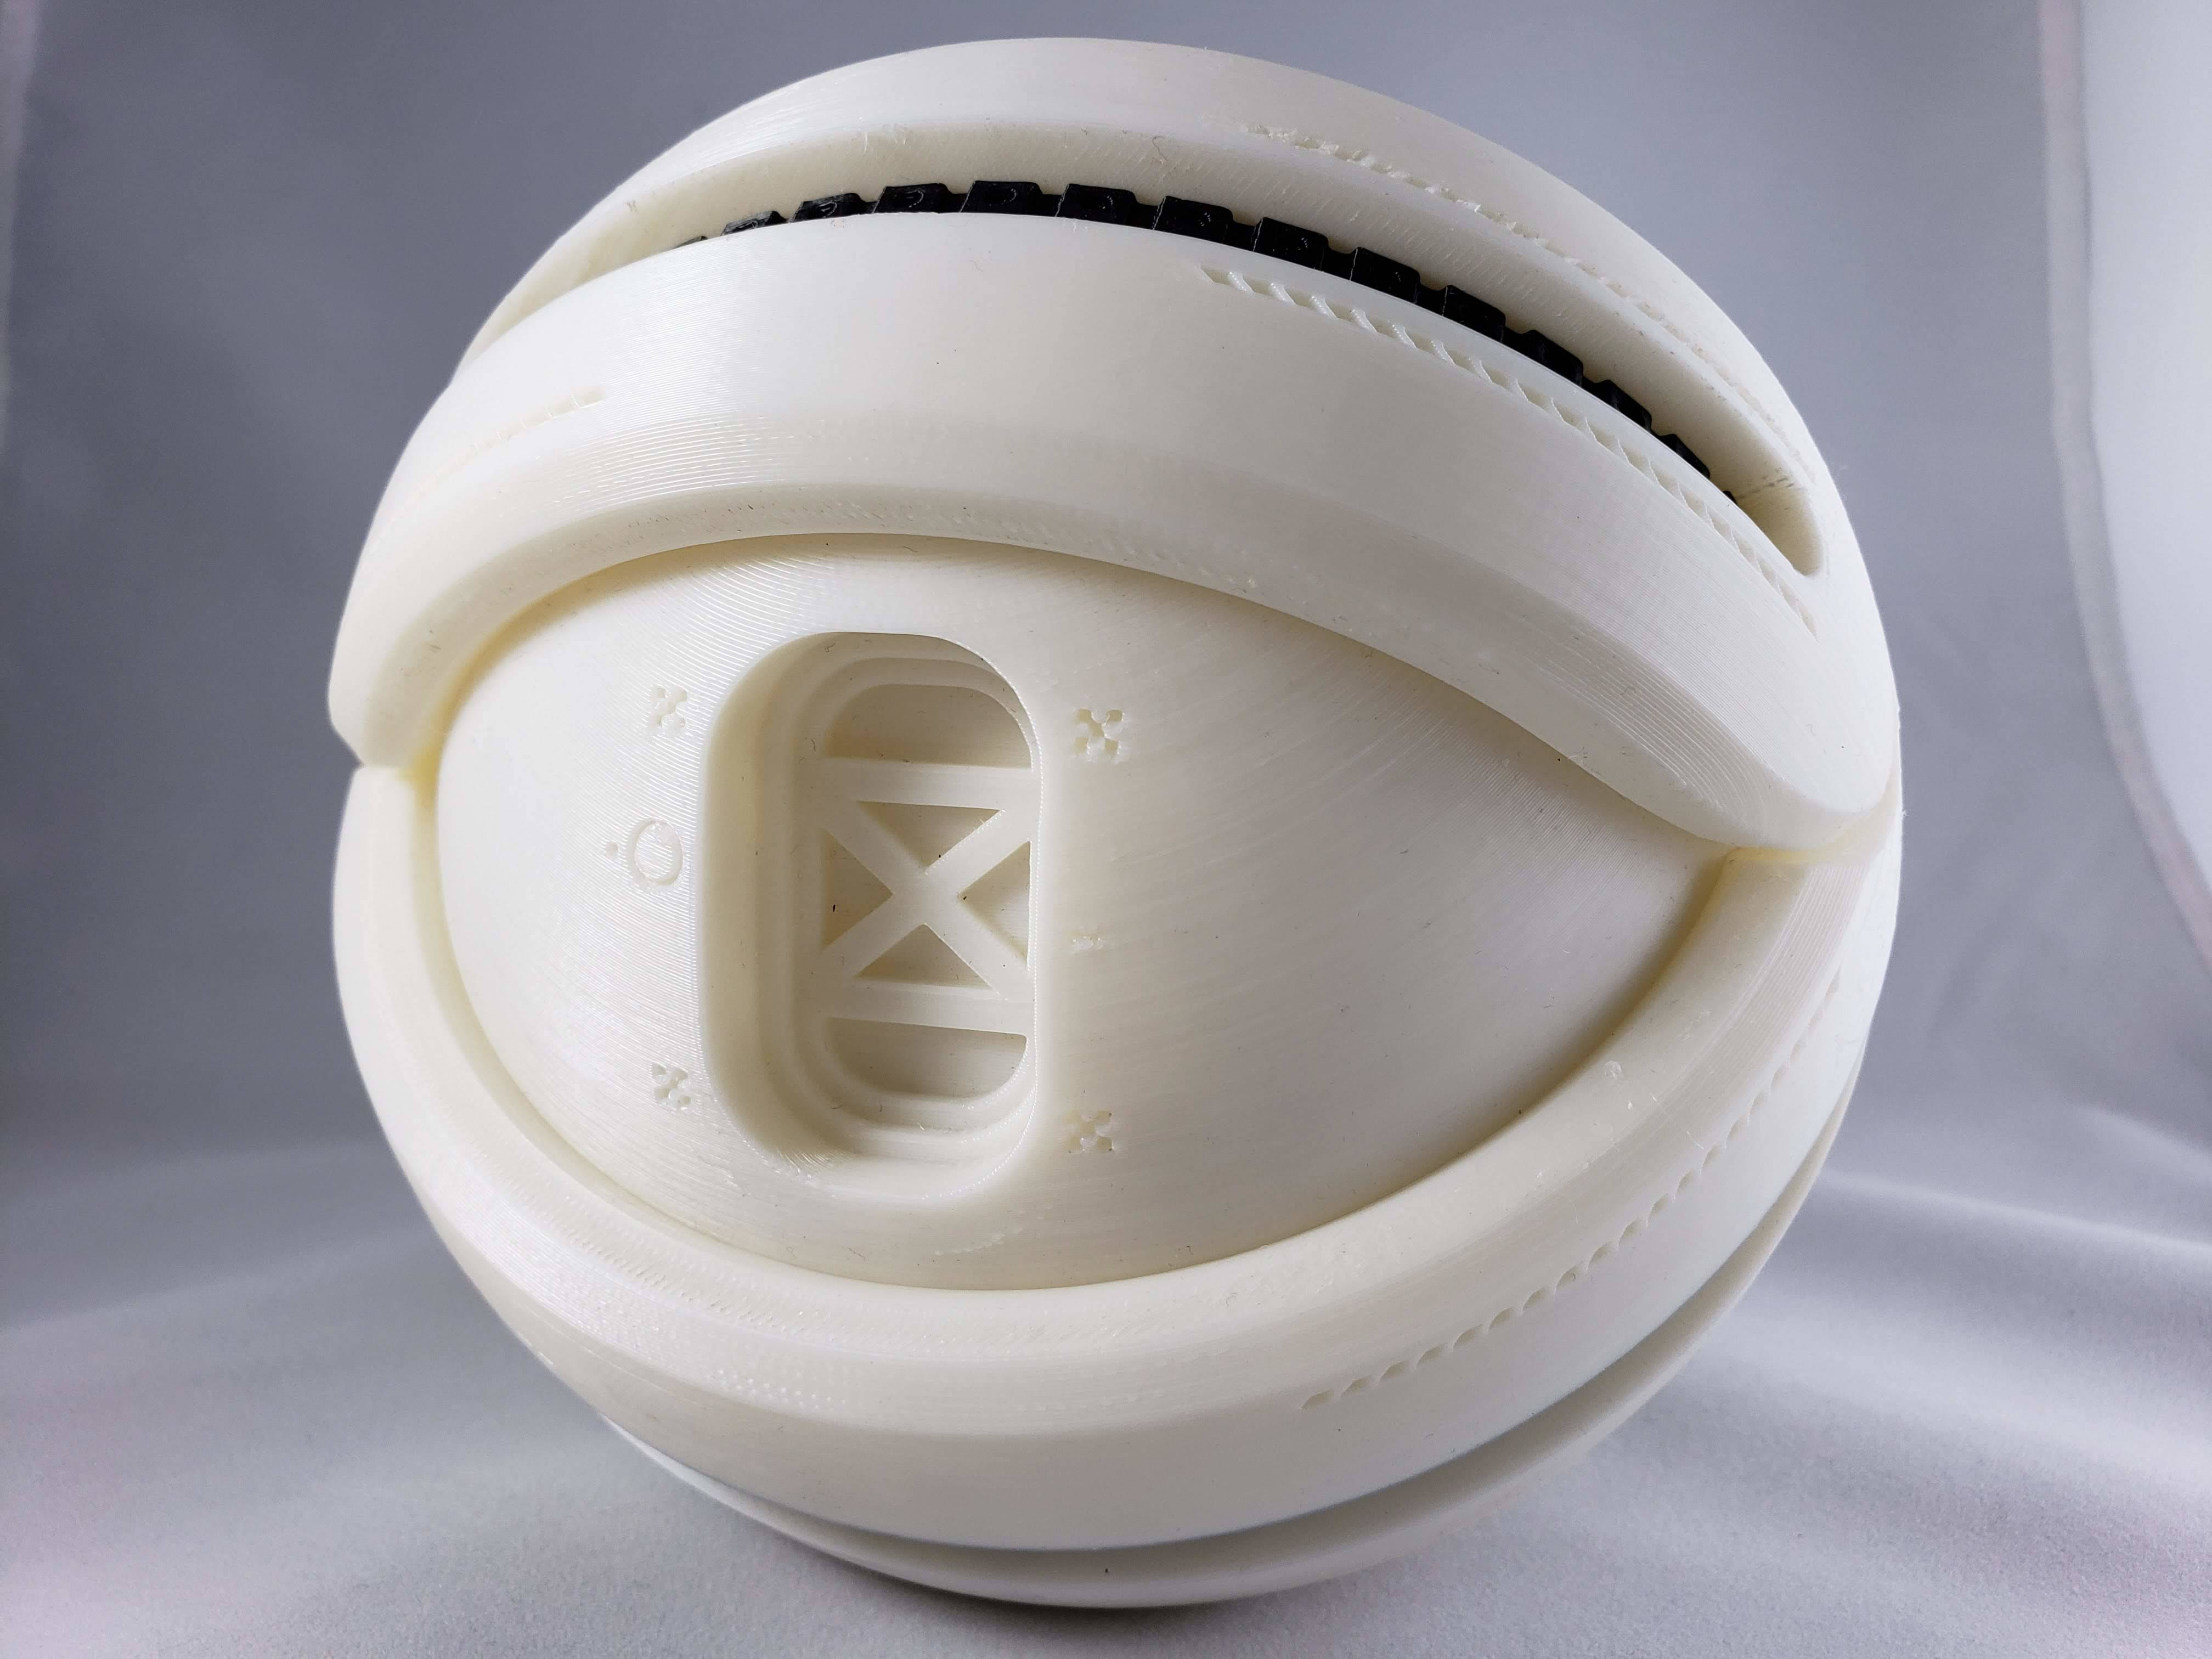 20191115_134840.jpg Download free STL file Timeless Mothership with spinning ring • 3D printer template, Dsk